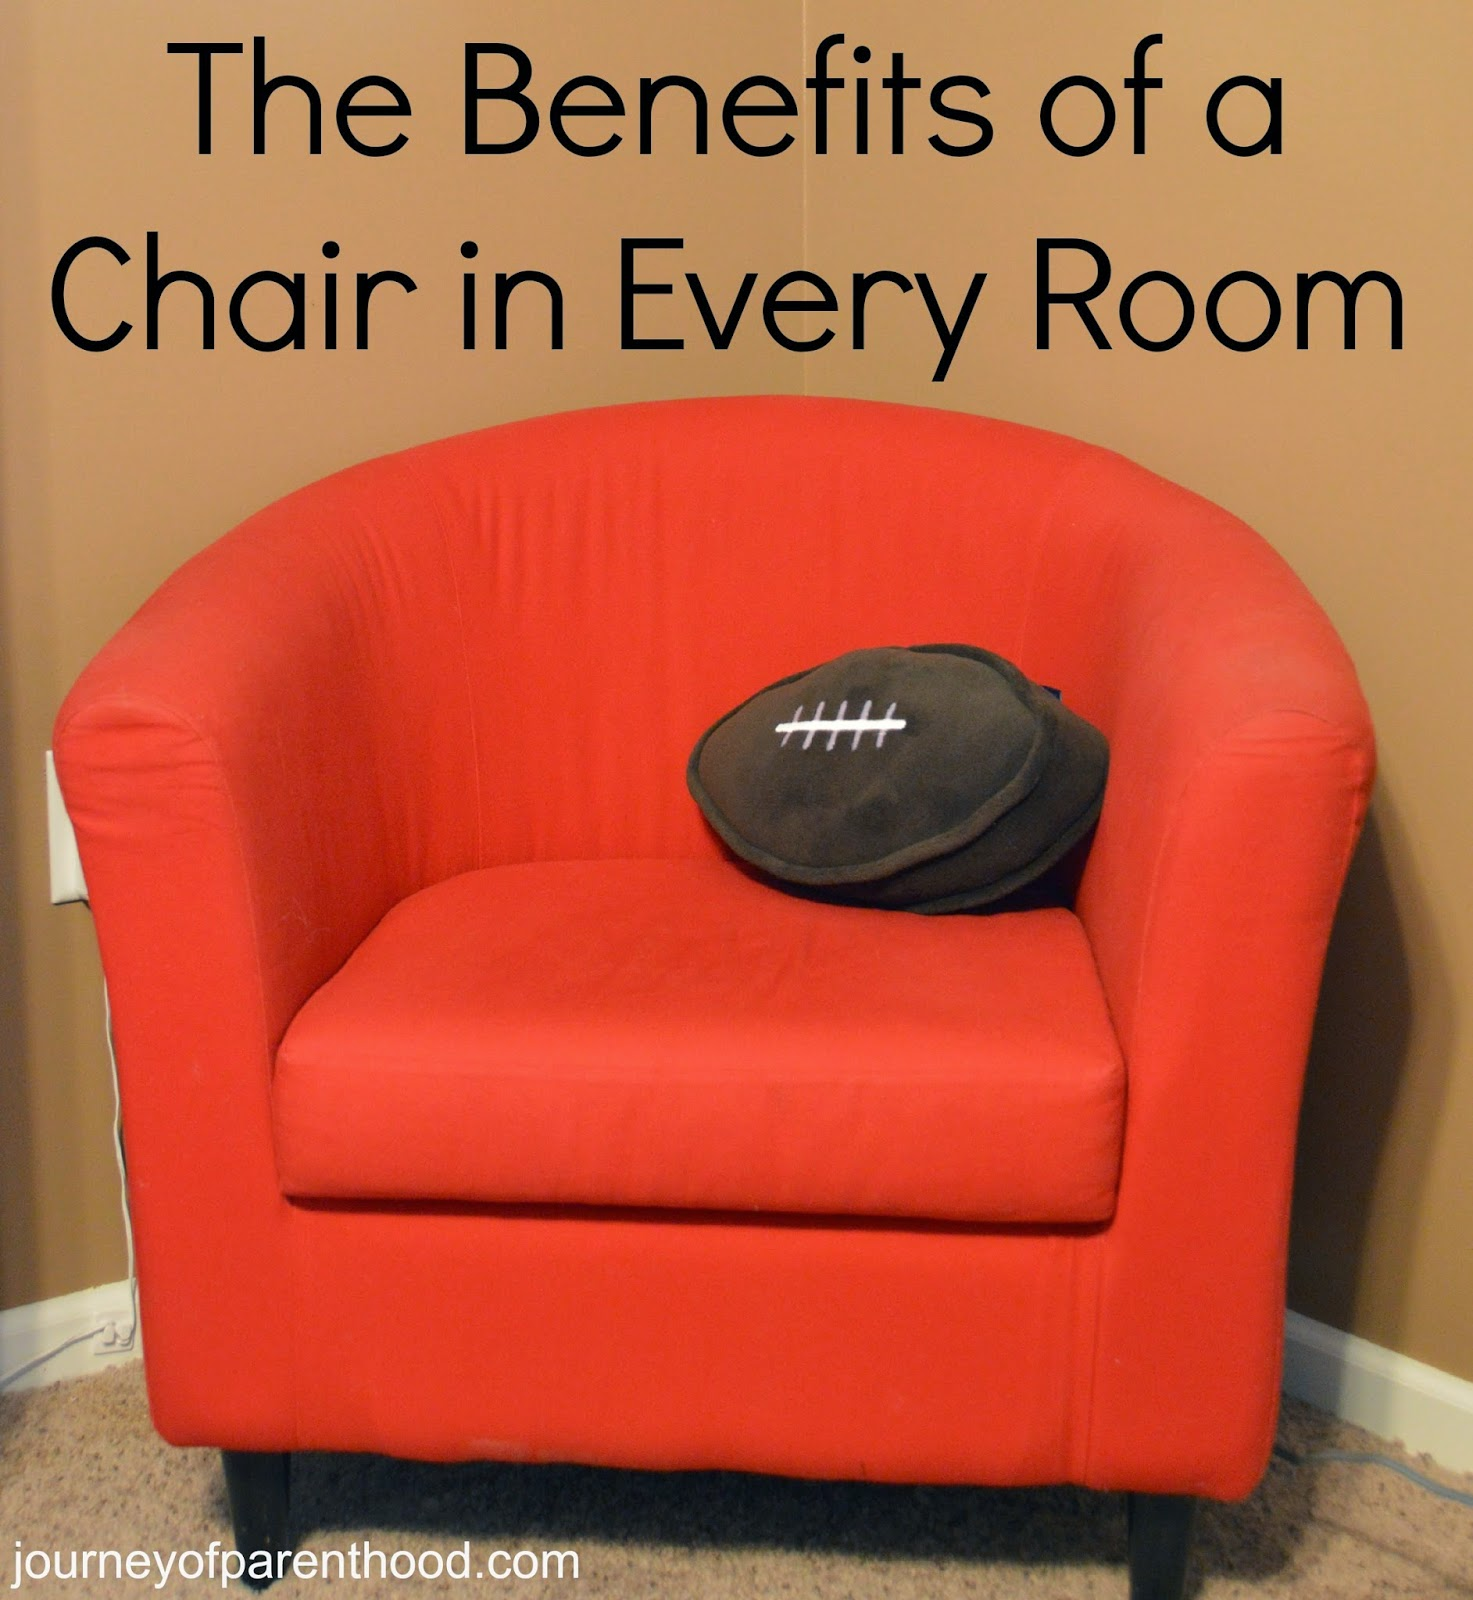 The Benefits of a Chair in Every Room